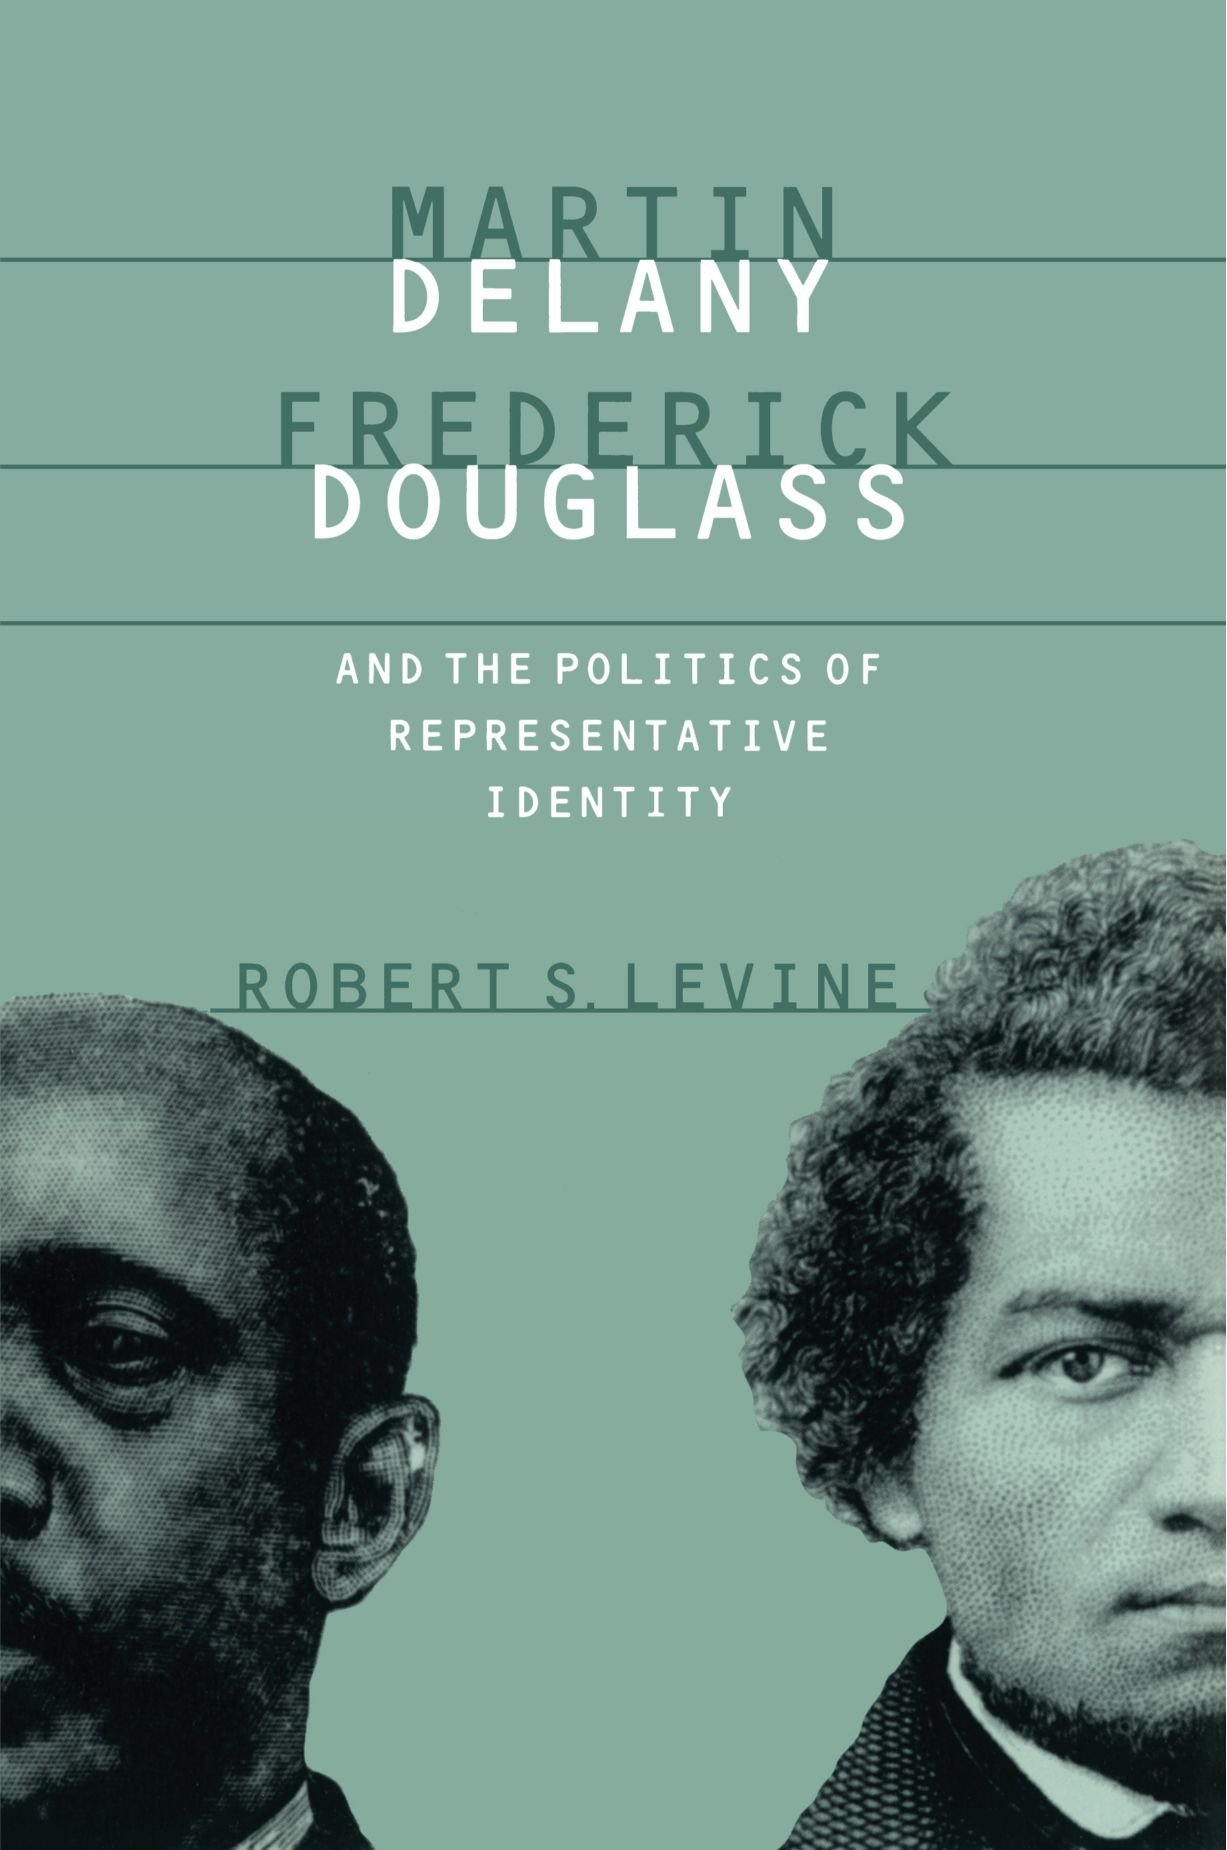 Robert S. Devine, Martin Delany, Frederick Douglass, and the Politics of Representative Identity-click the link below for more information about this book.